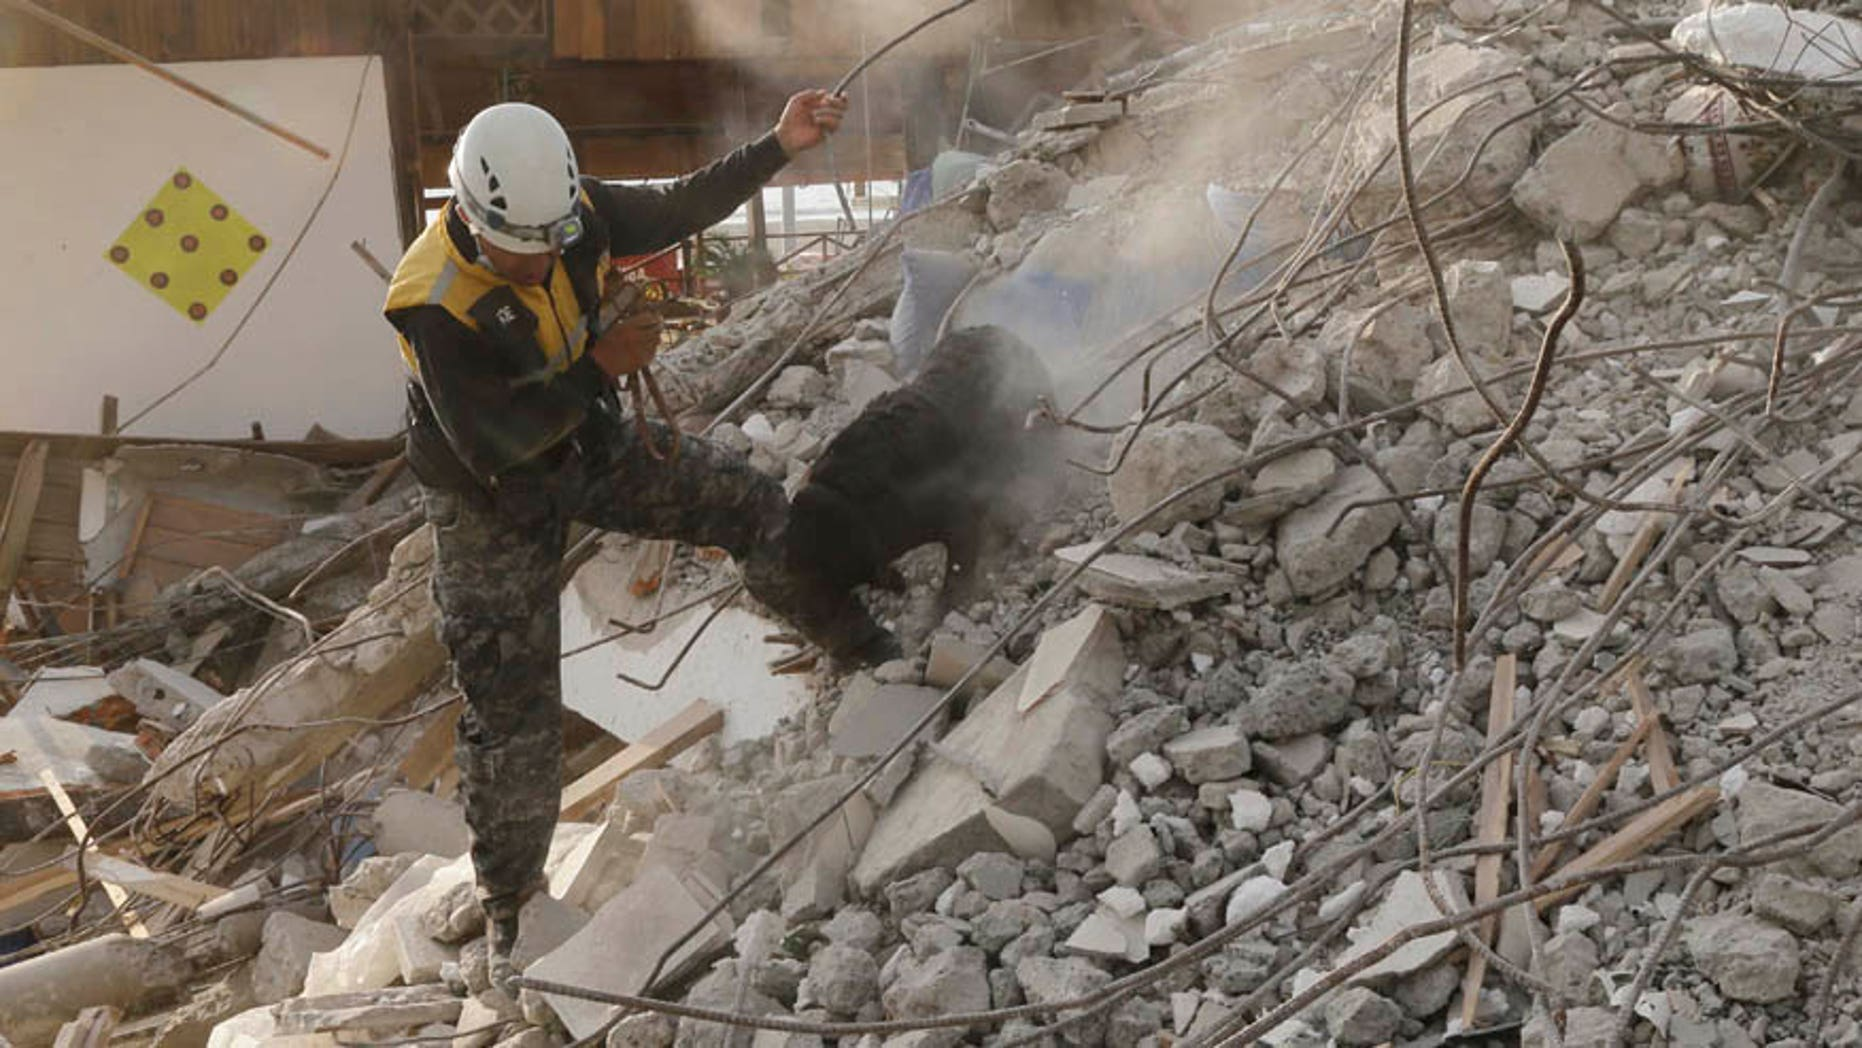 April 19, 2016: A dog rescue unit searches for survivors in the rubble of an earthquake collapsed building in Pedernales, Ecuador.